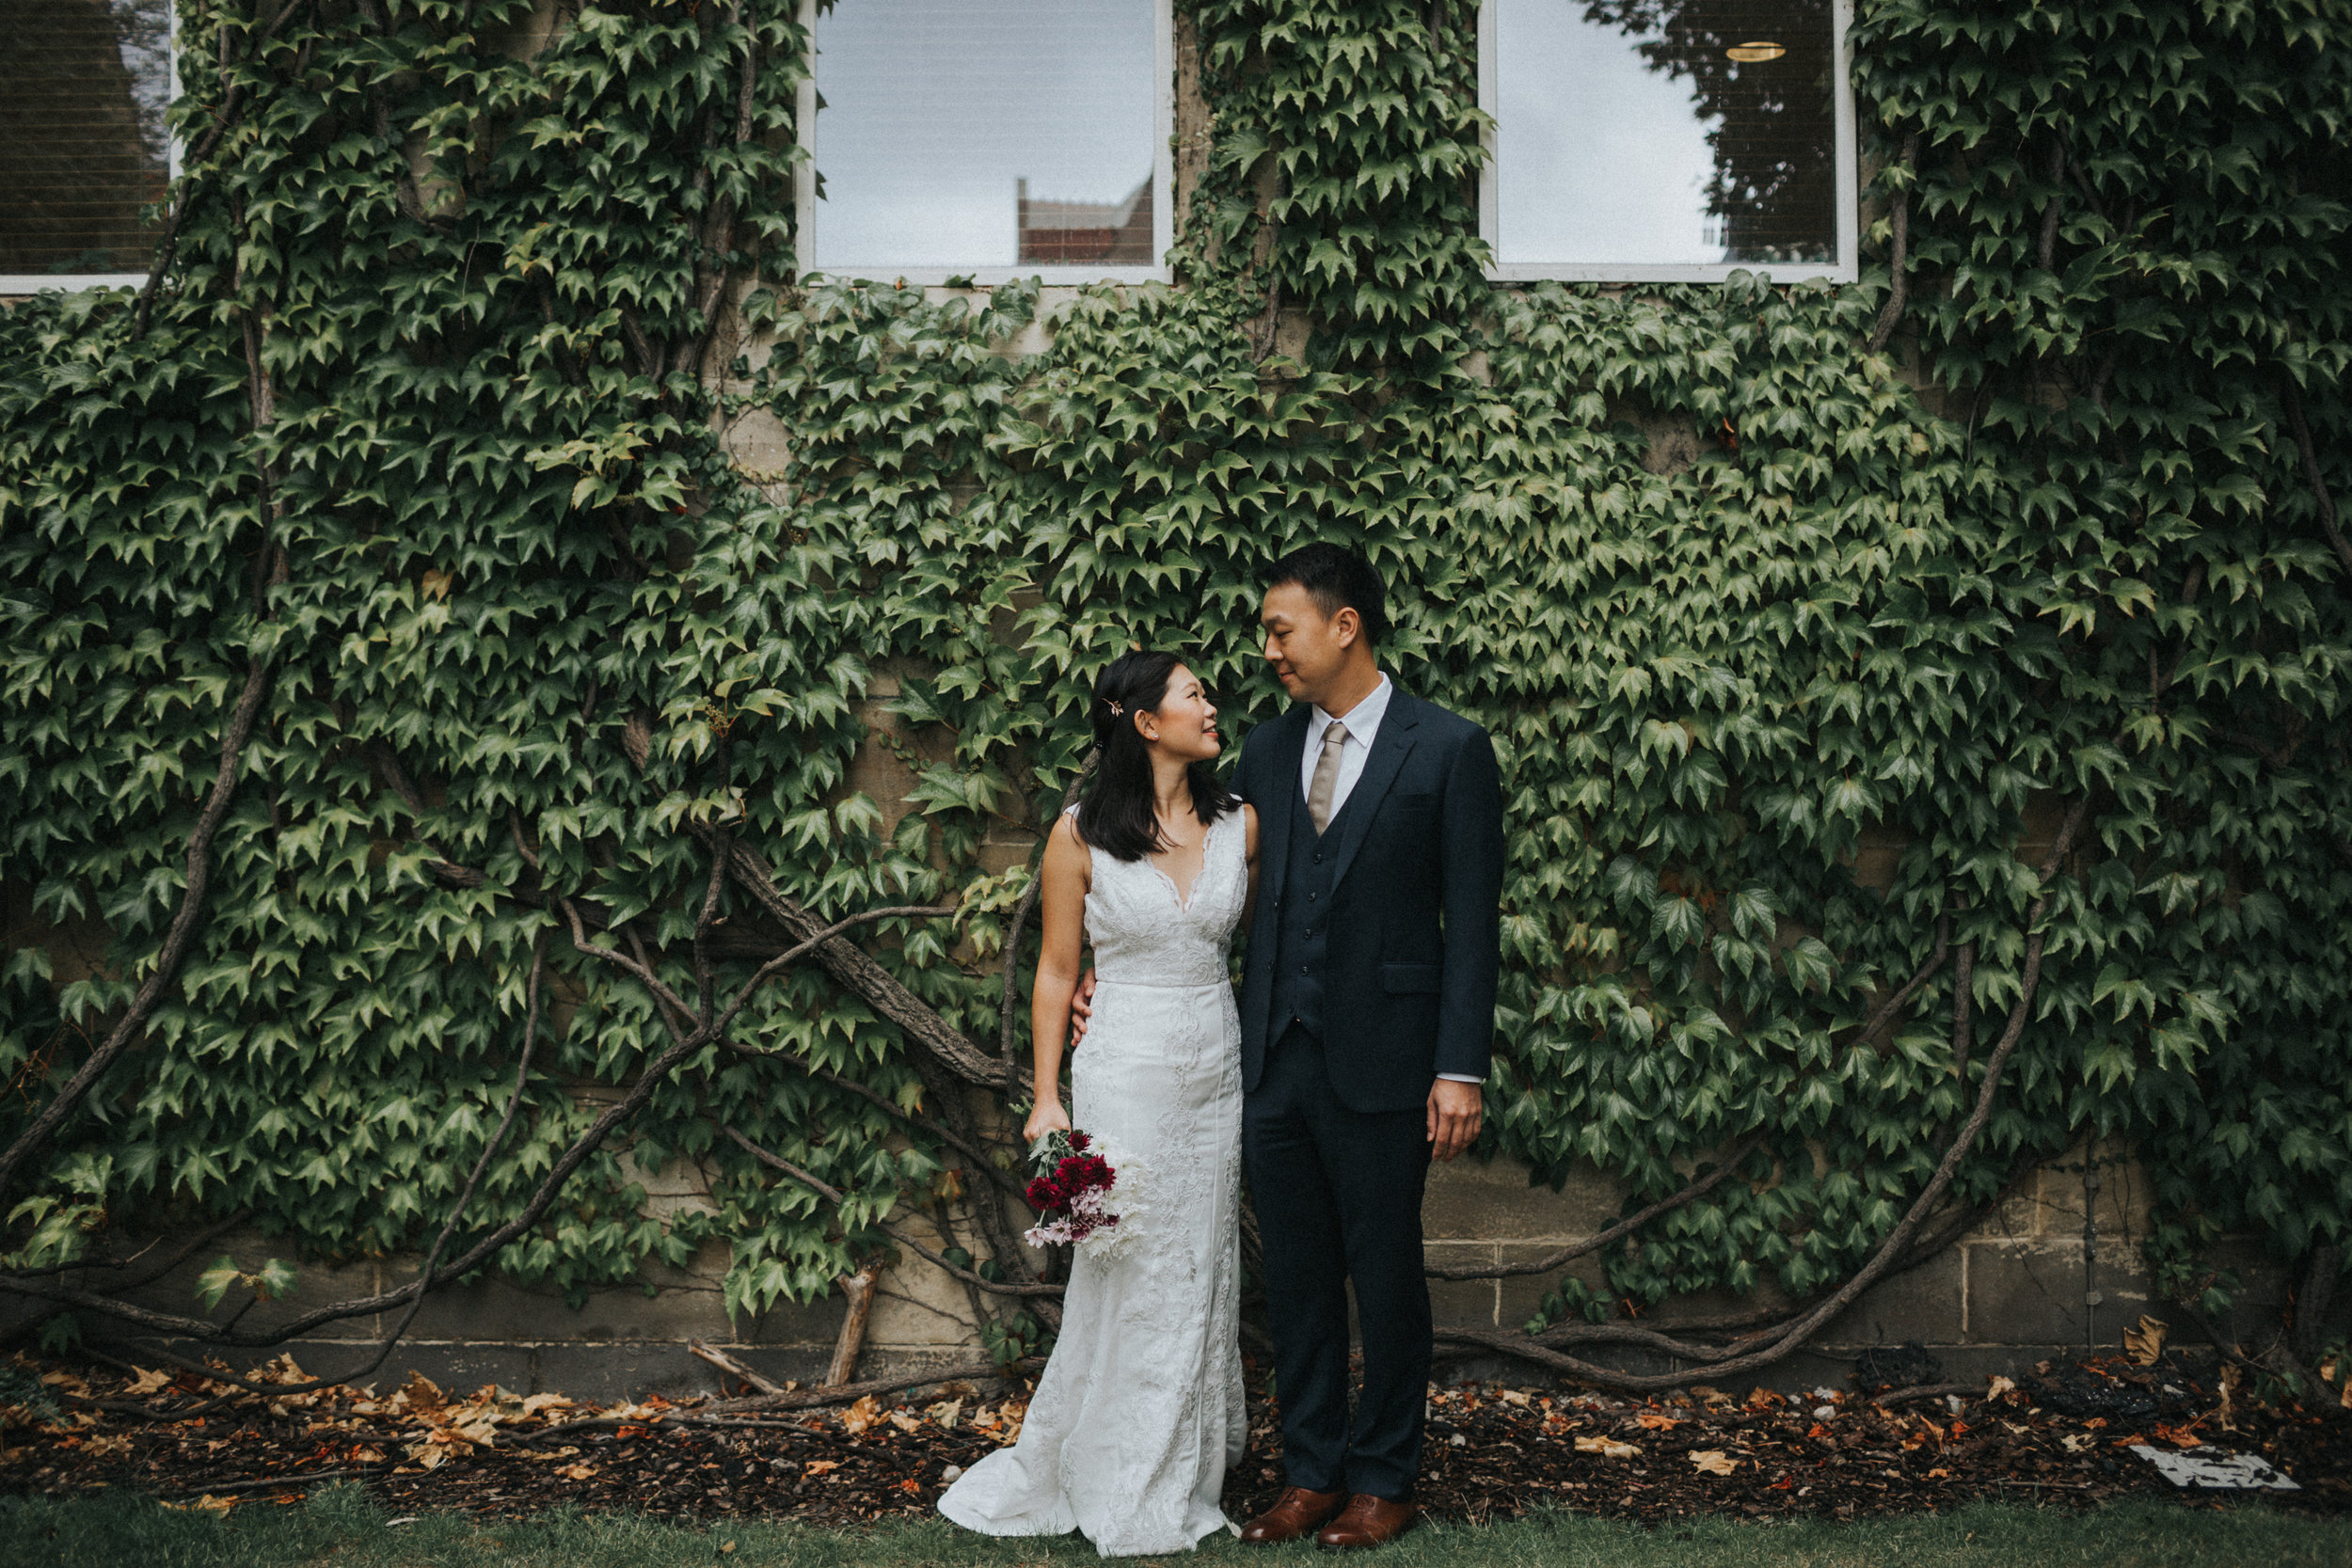 Couple stand together in front of a wall full of Ivy at Manchester University.